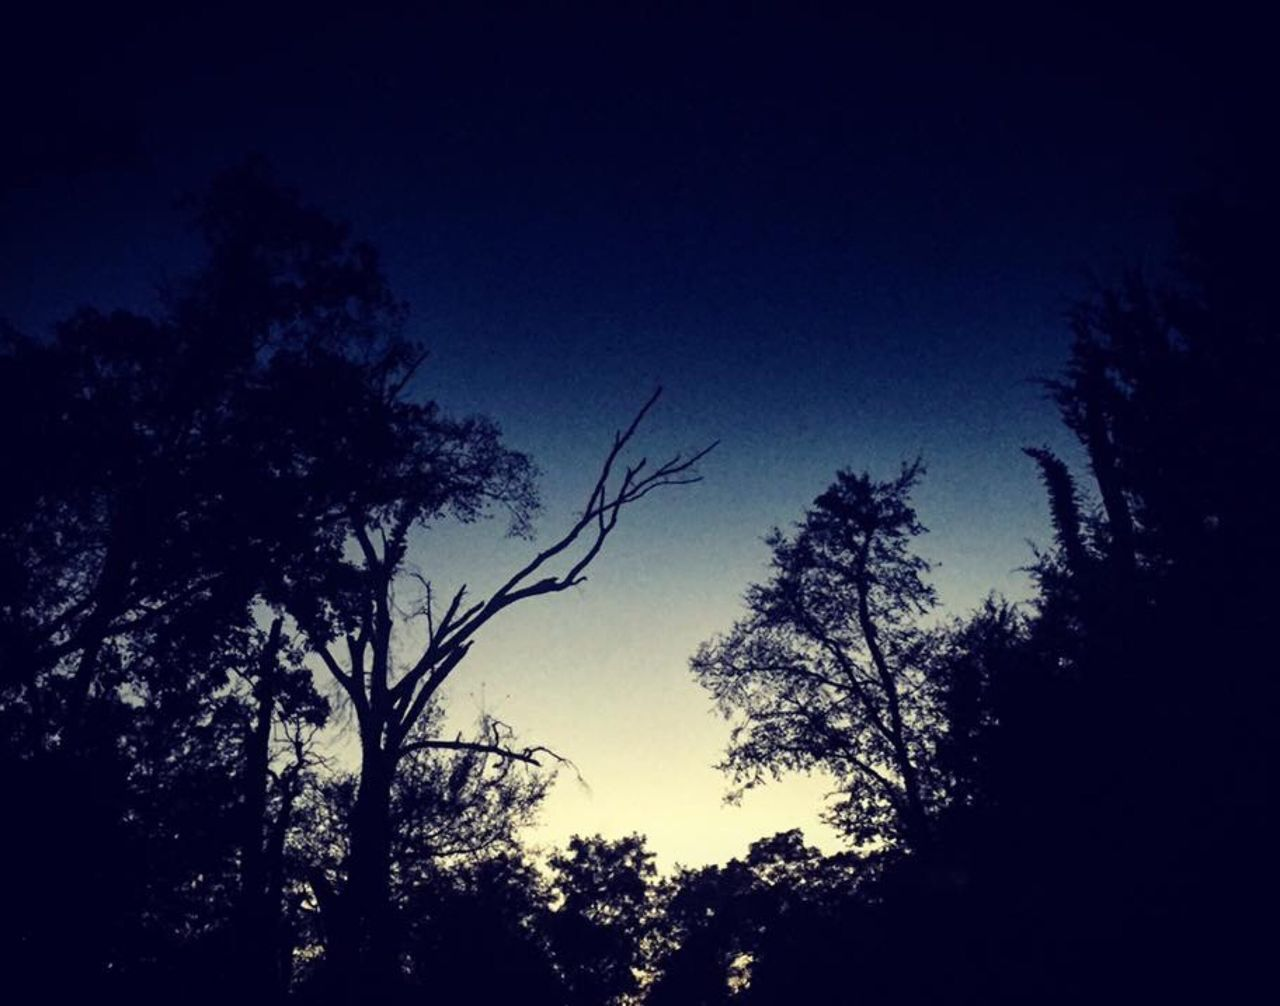 tree, low angle view, silhouette, dark, nature, night, no people, growth, blue, beauty in nature, outdoors, sky, moon, clear sky